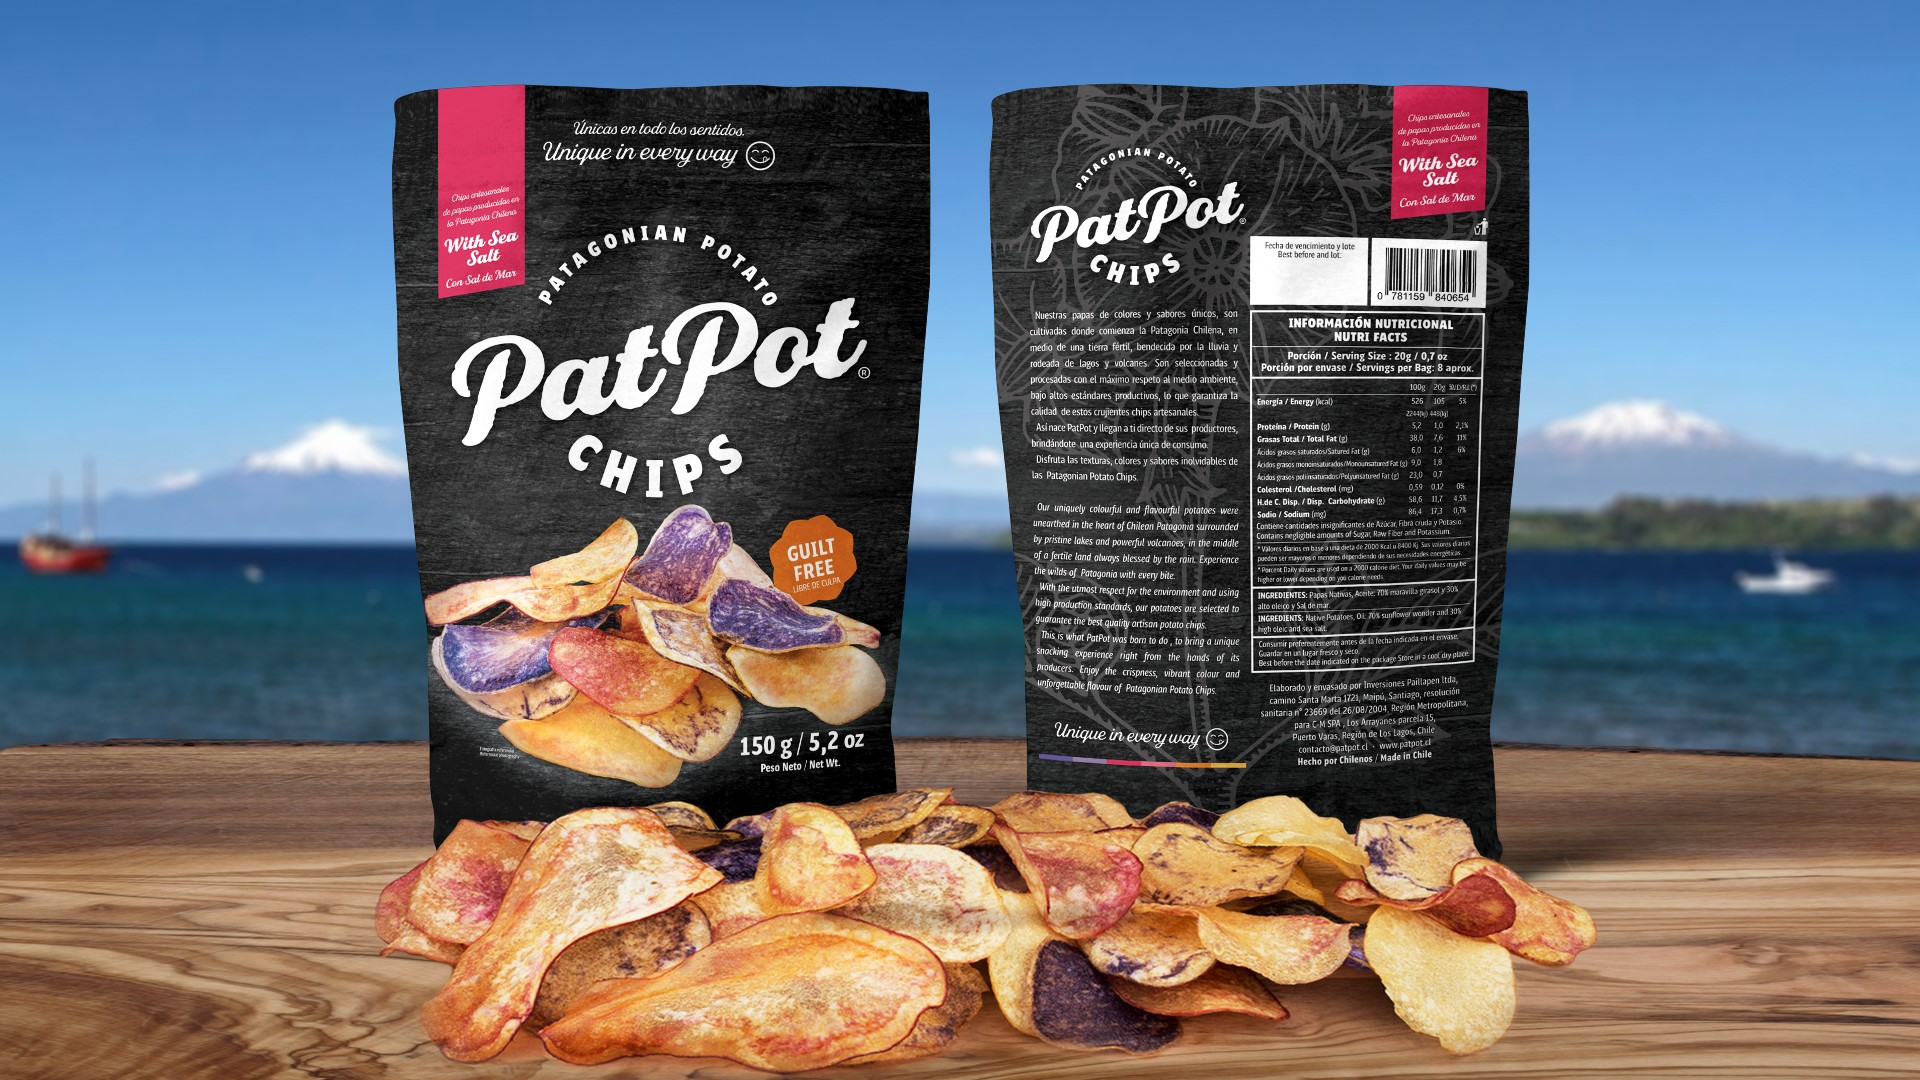 PapasPot Chips